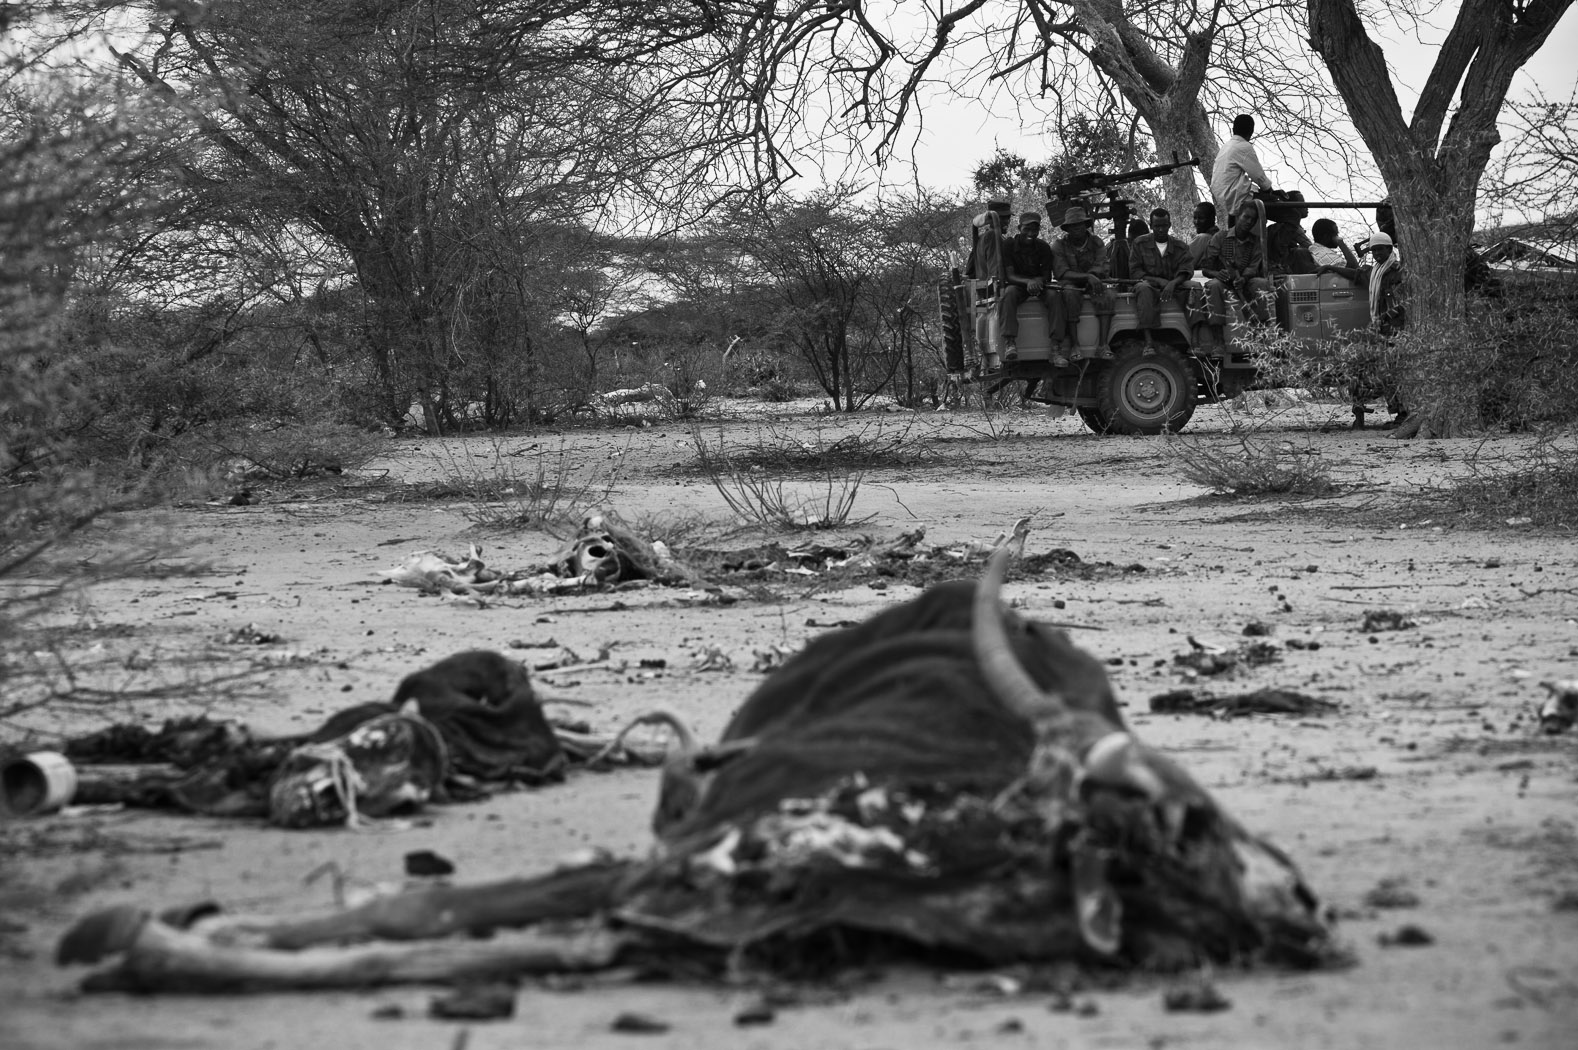 Soldiers with a Somali militia sit in their technical behind the rotting carcasses of cattle, just outside the Somali border town of Dhobley, just five kilometres from the Kenyan border. When surface water catchments dried out in the area, pastoralists brought their cattle to Dhobley for water from the town's two boreholes. But with only pumped water available, there was no grass for the cattle to graze upon, starving them to death.  Some of the first effects of the drought were the loss of livestock and failed harvests, with many families losing their entire livelihood.